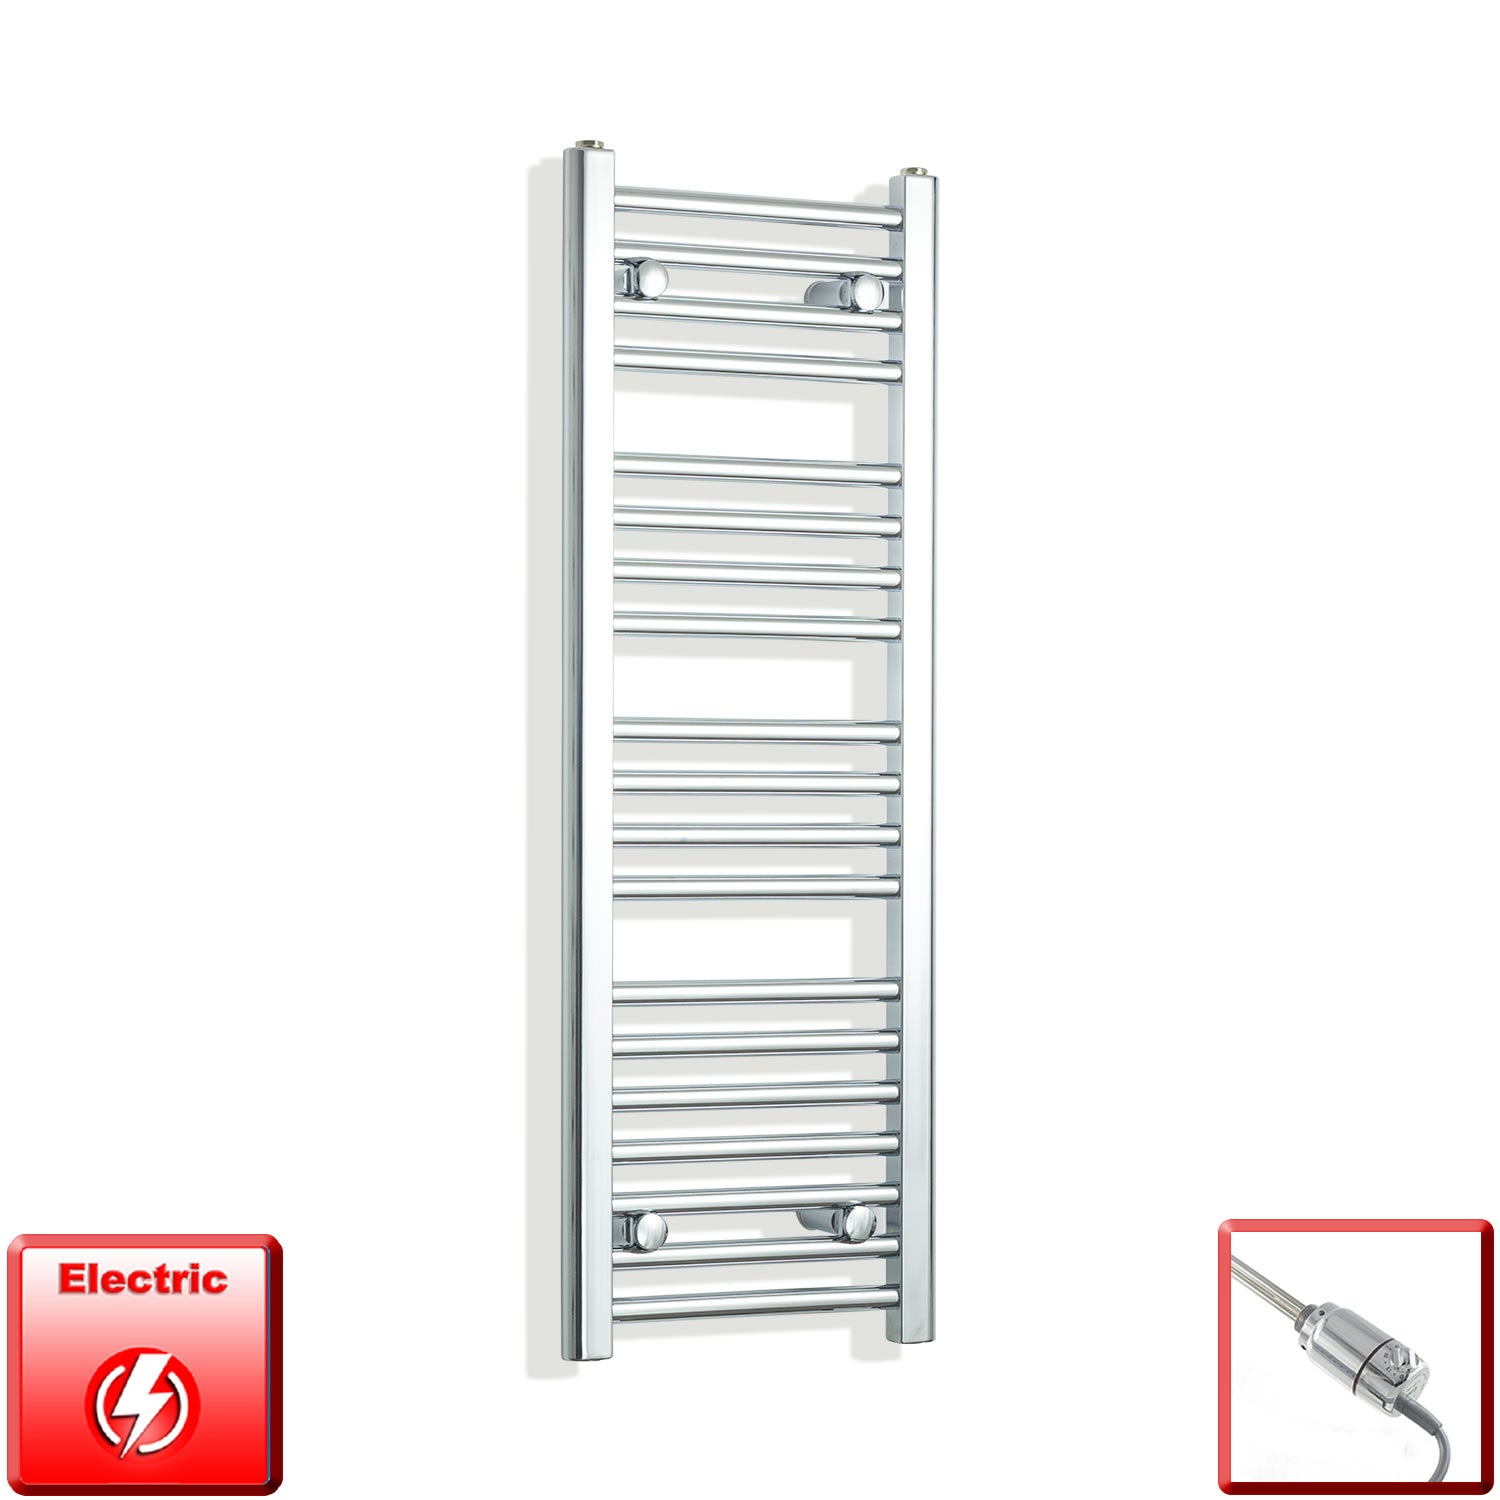 350mm Wide 1000mm High Flat Chrome Pre-Filled Electric Heated Towel Rail Radiator HTR,GT Thermostatic